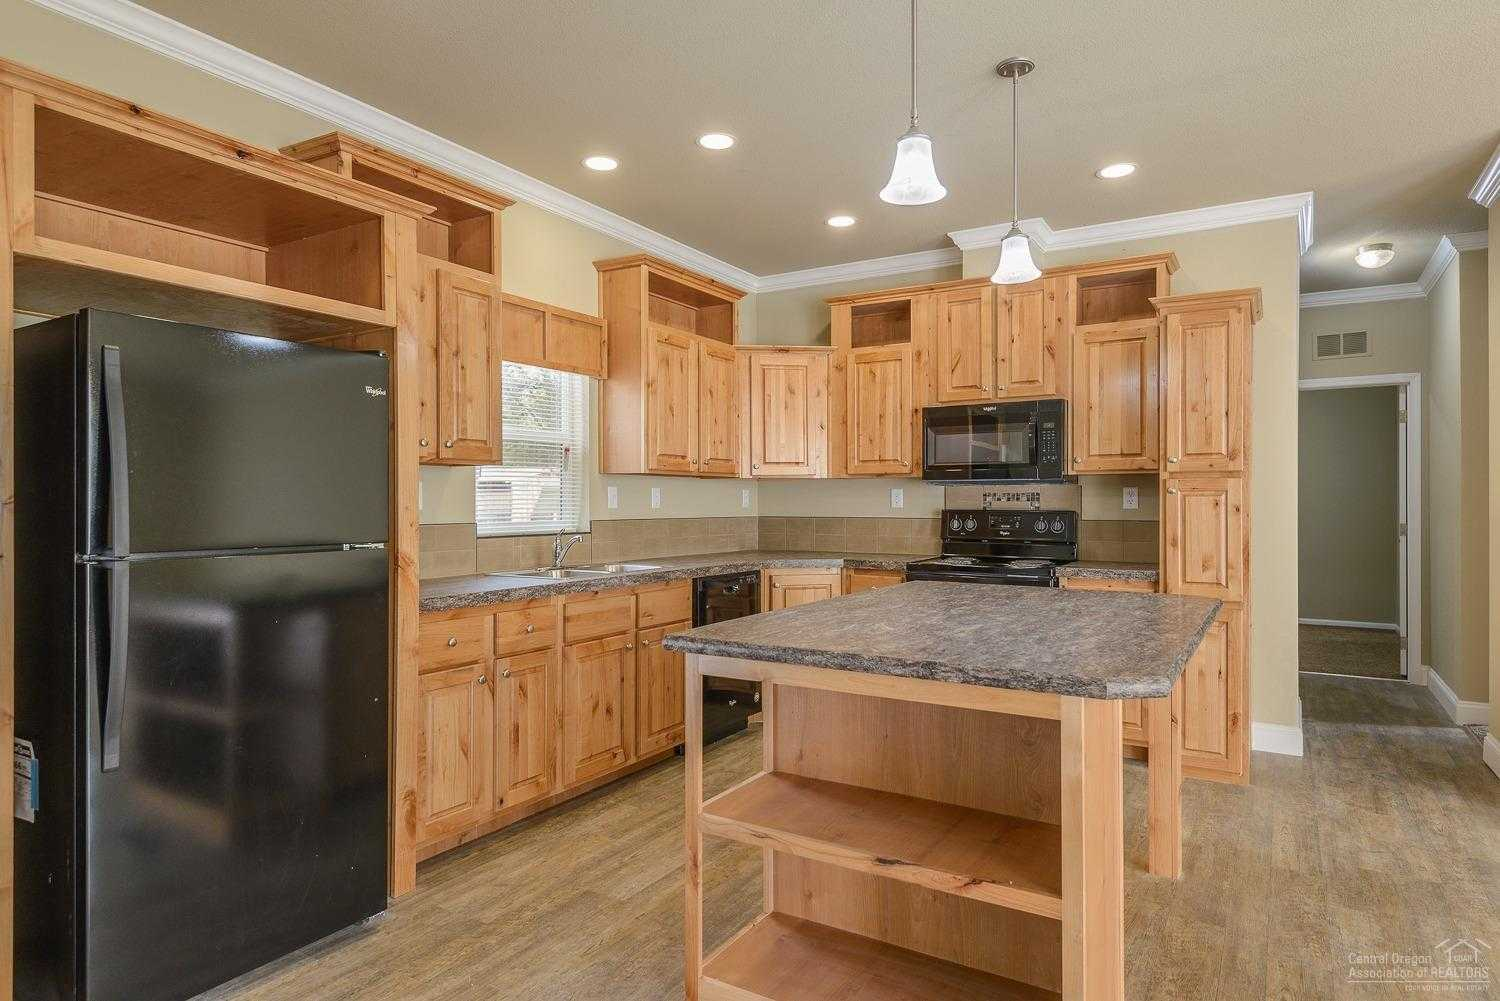 $249,900 - 3Br/2Ba -  for Sale in Oww2, Bend